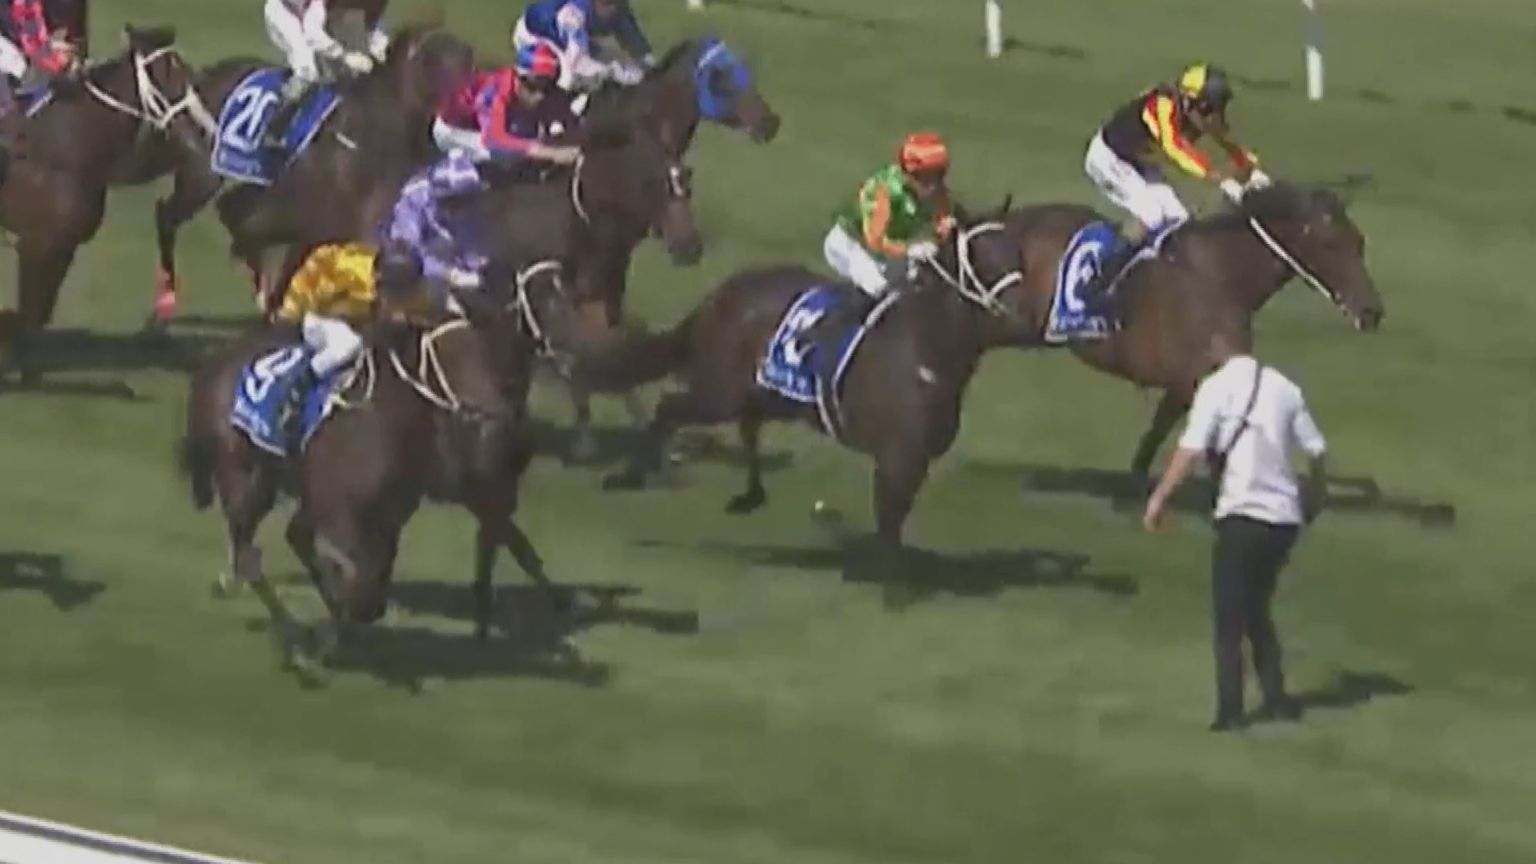 Horse racing's image damaged again by cruel dead horse video